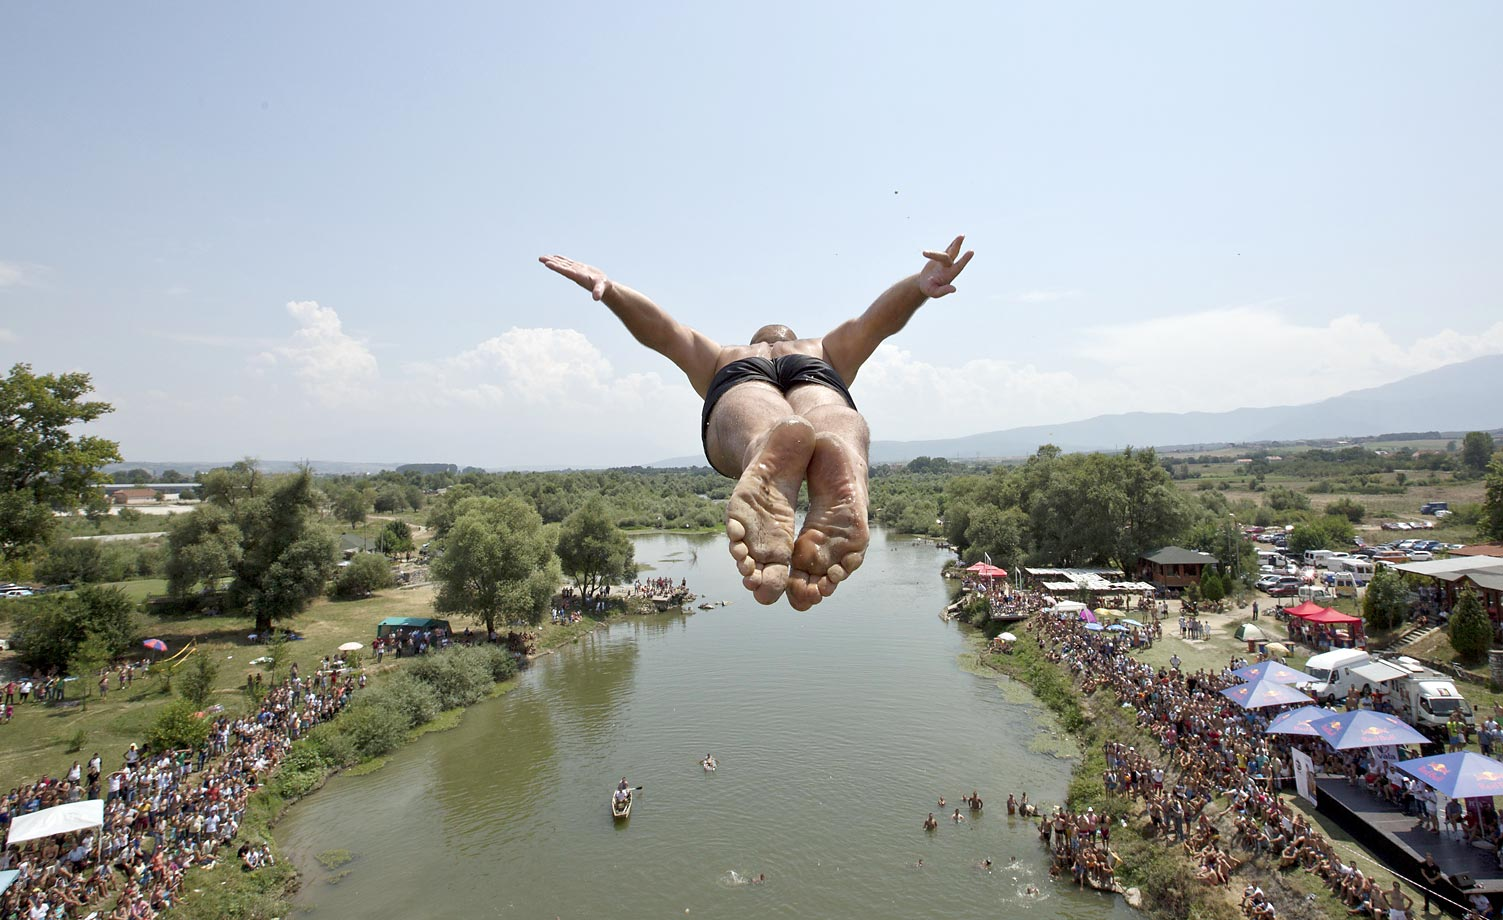 A diver jumps from the Ura e Shenjte bridge during the traditional annual high-diving competition at the Drini i Bardh river.